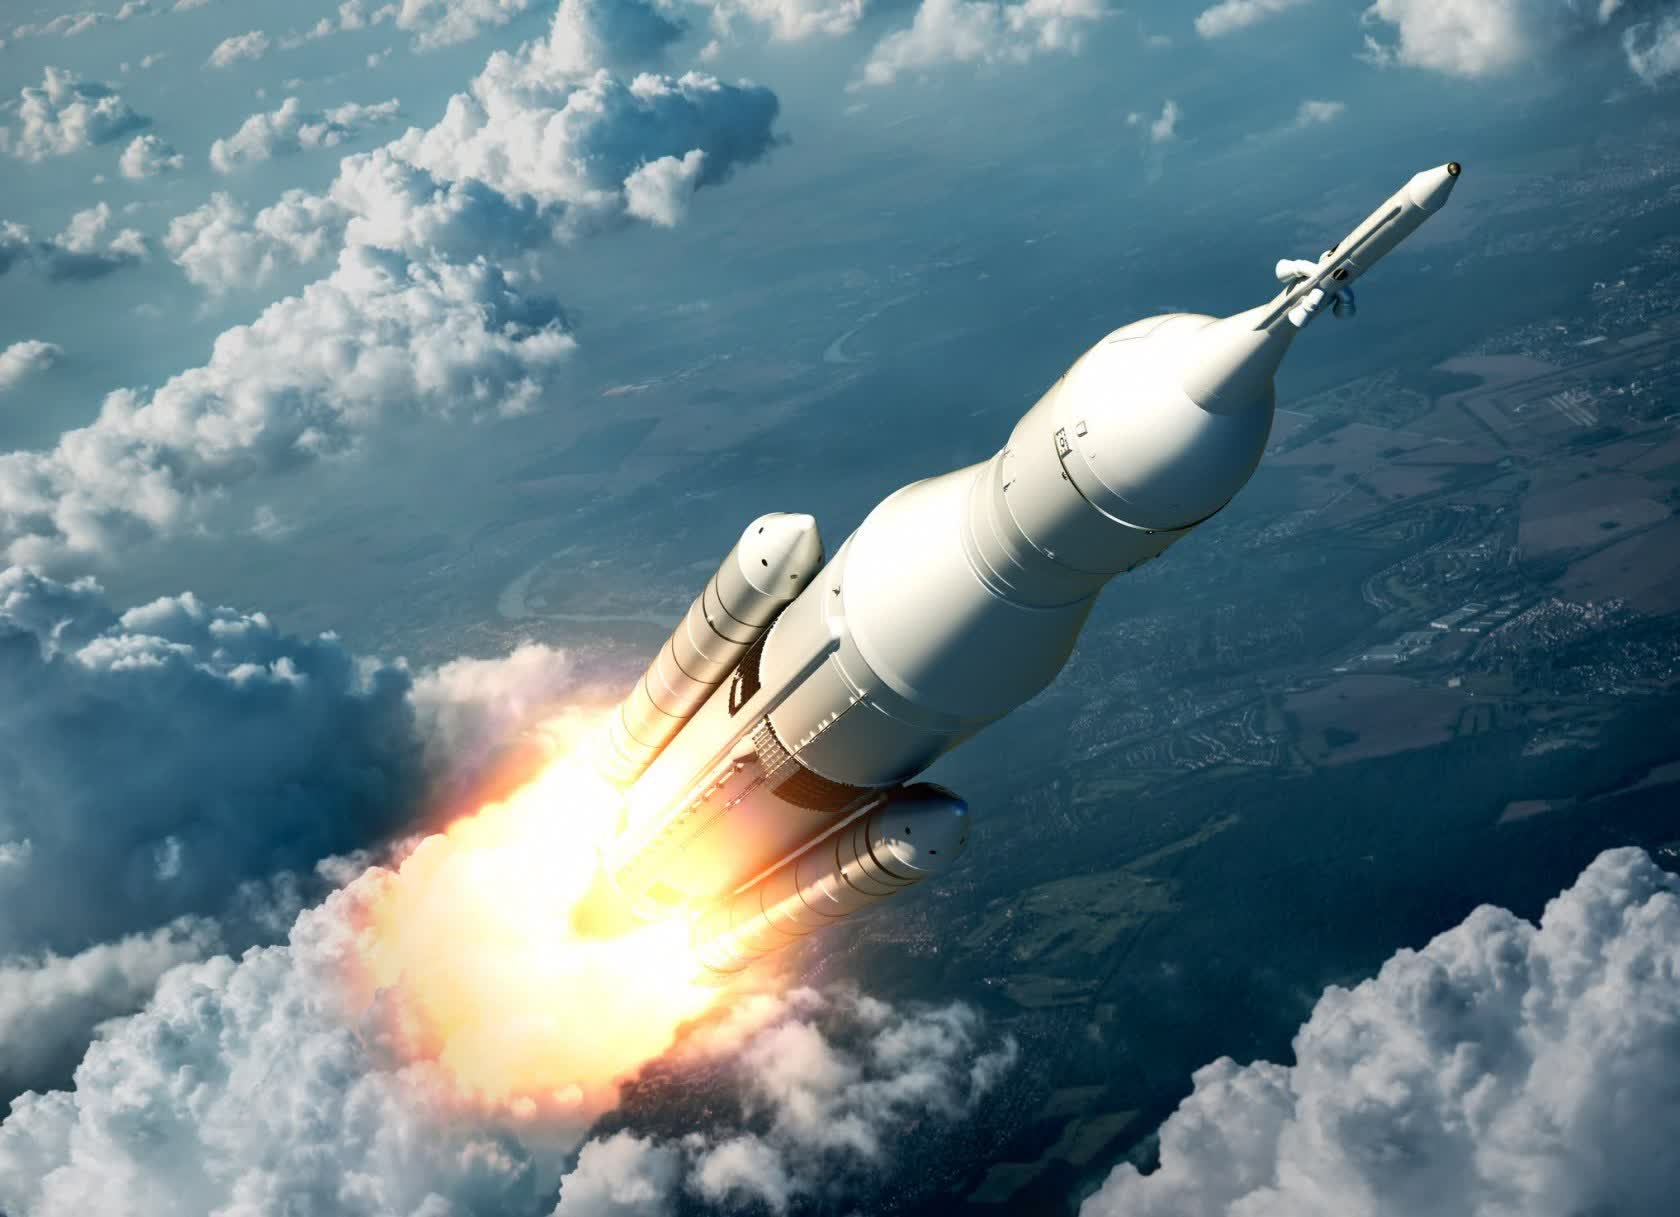 'Launcher' is a rocket startup with just 8 full-time employees